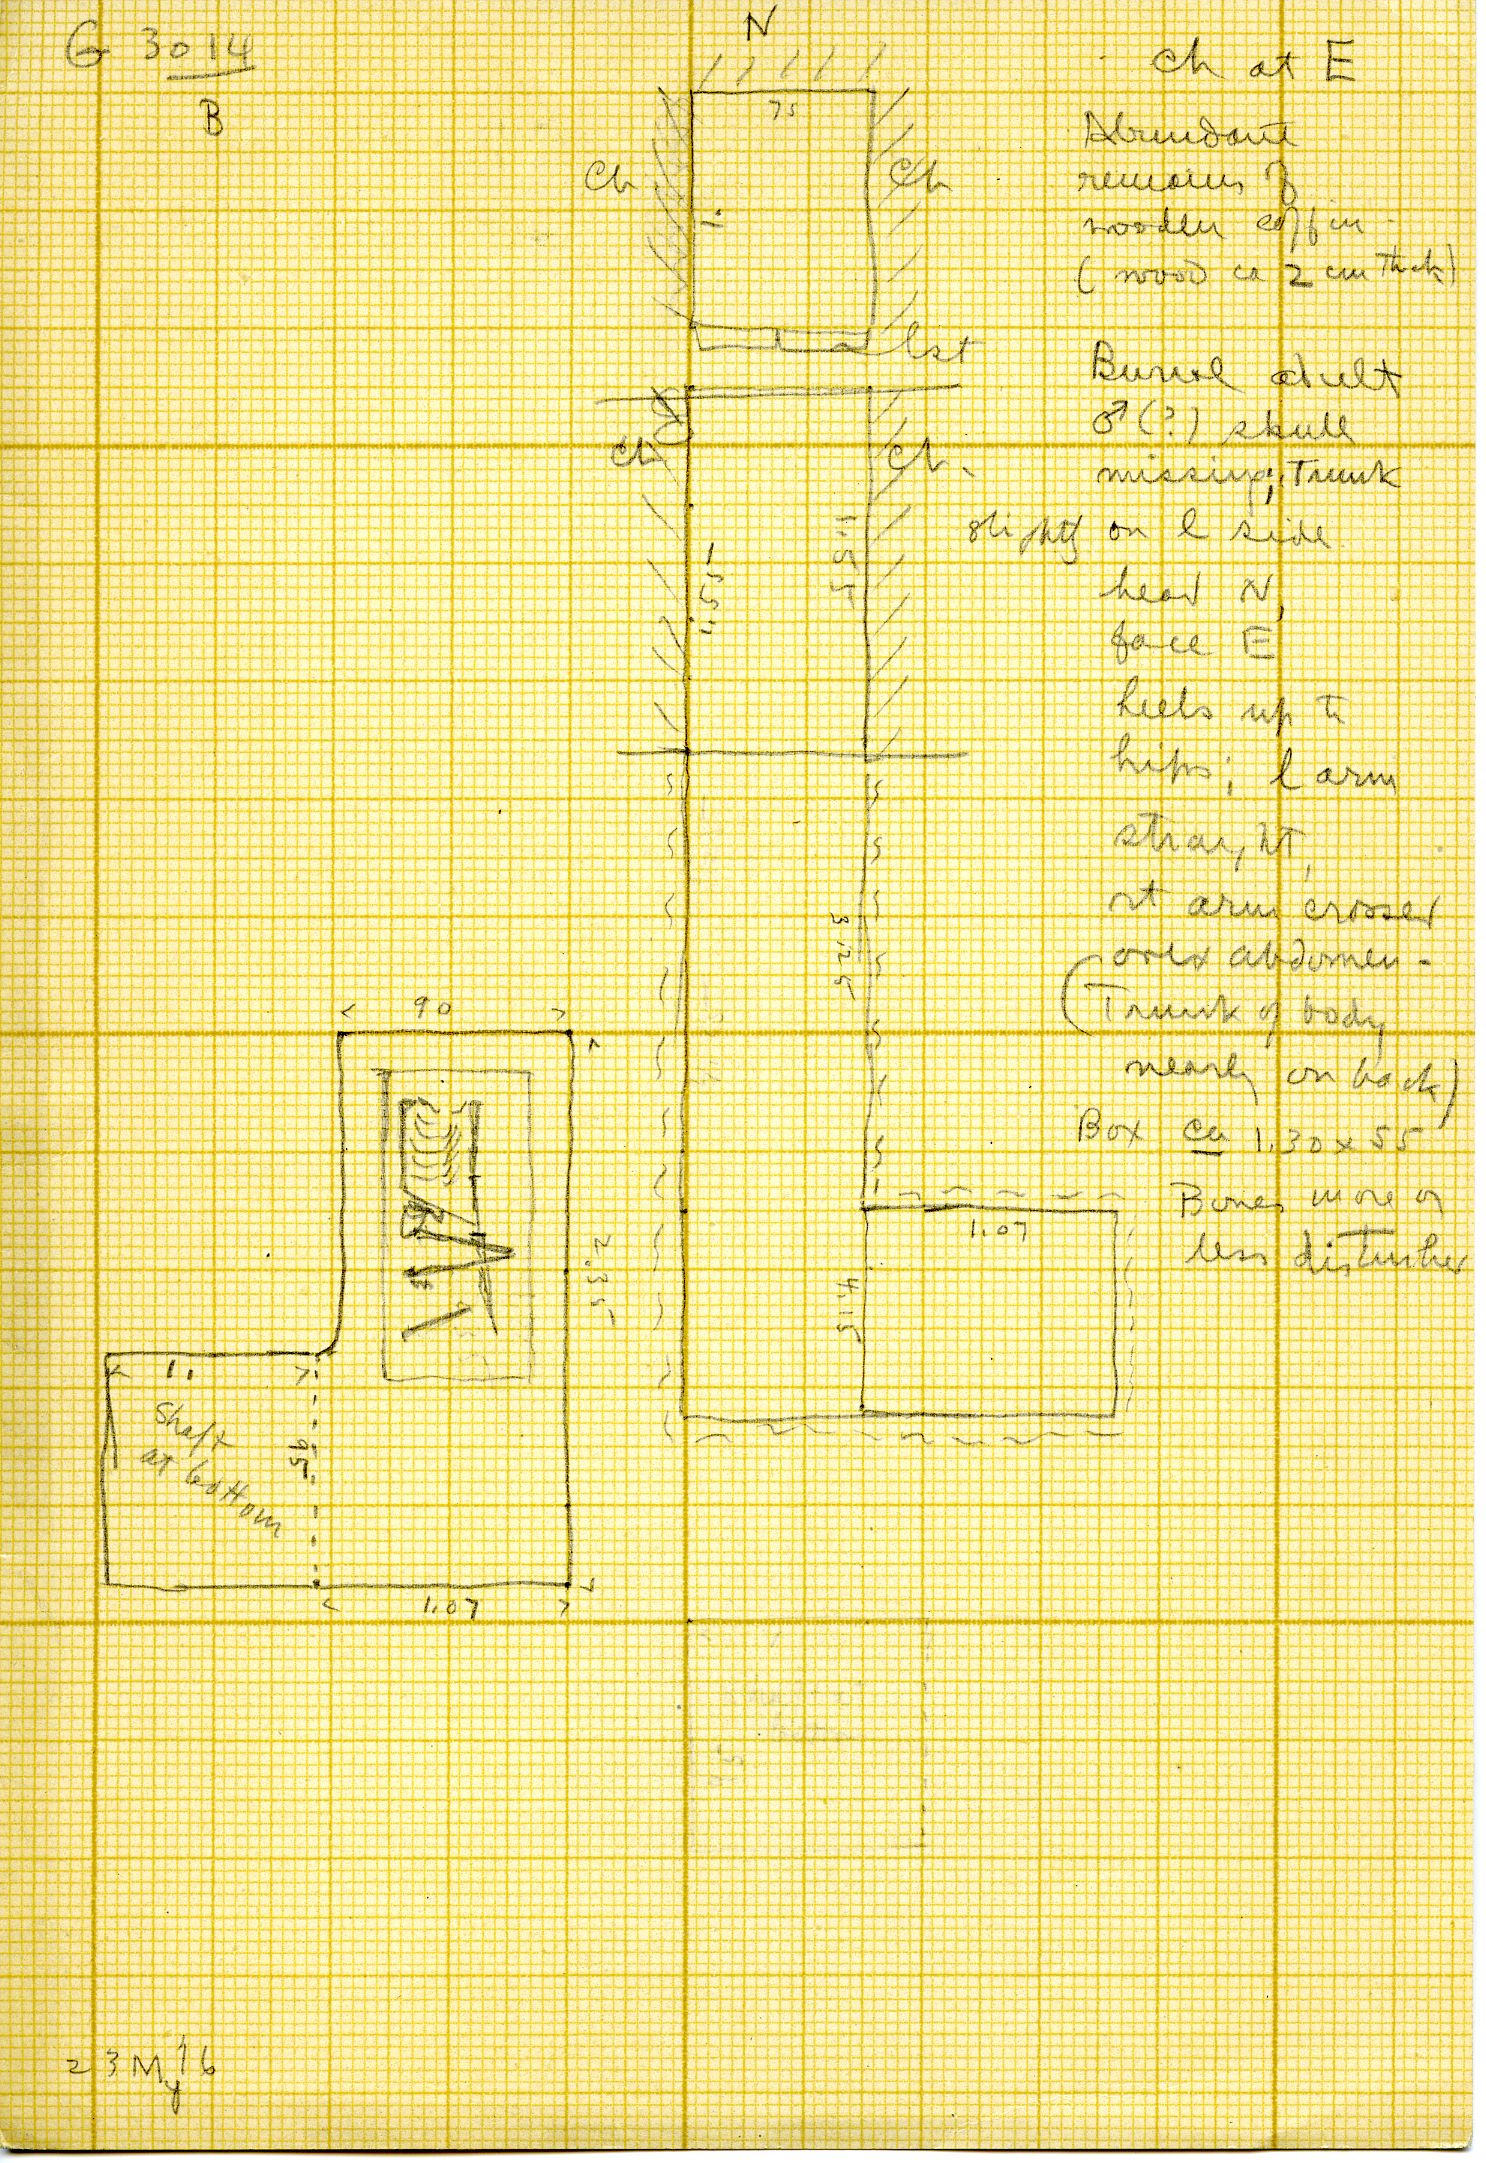 Maps and plans: G 3014, Shaft B